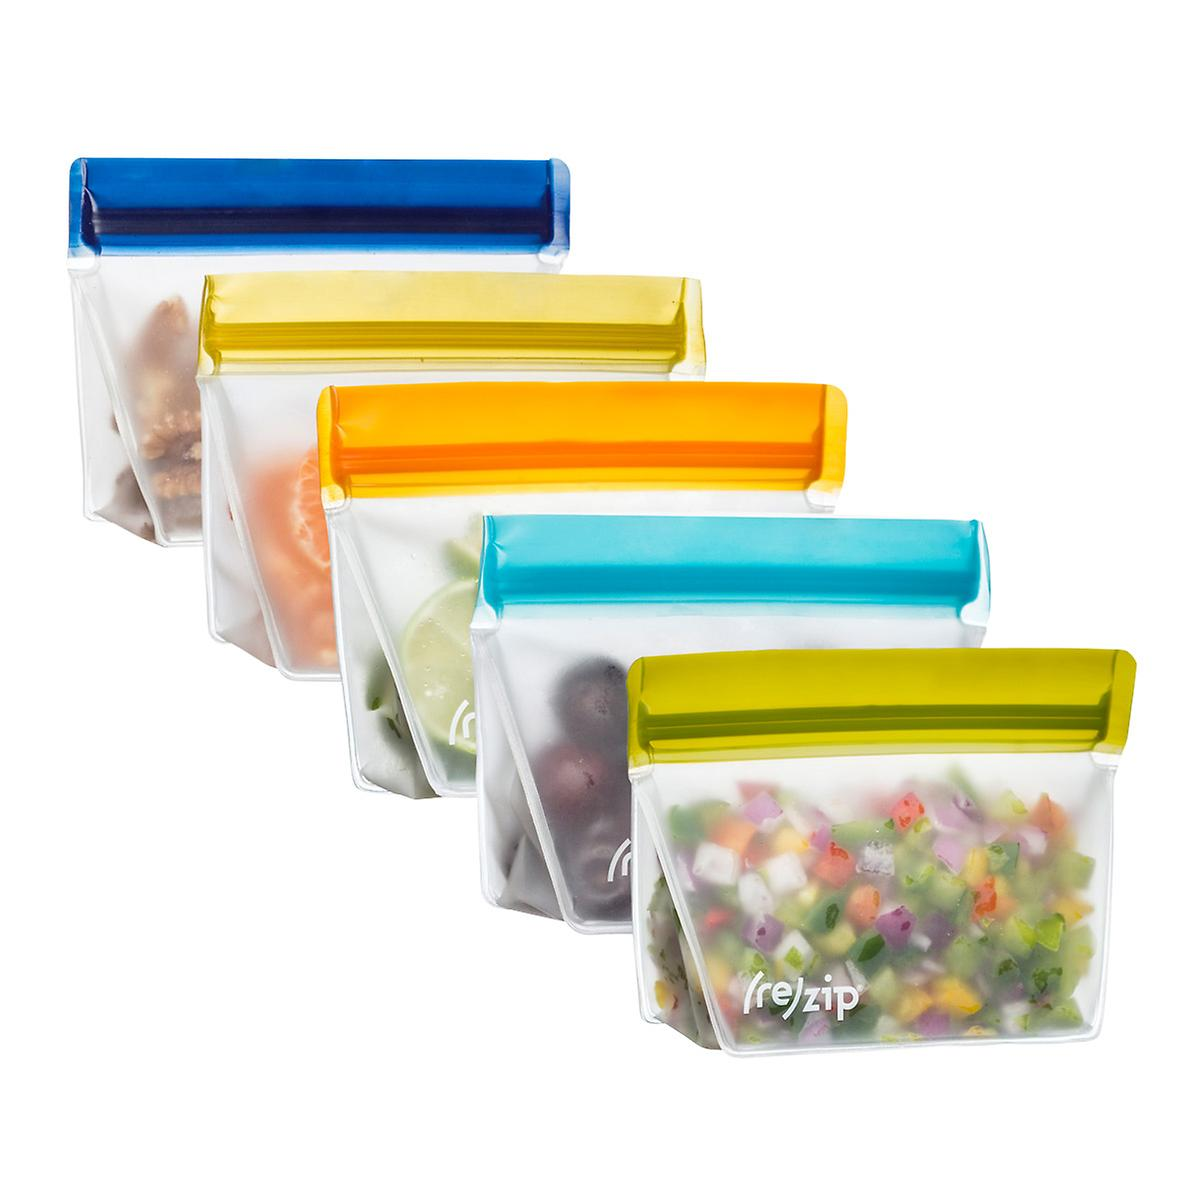 Blue Avocado Re-Zip Reusable Snack Bags